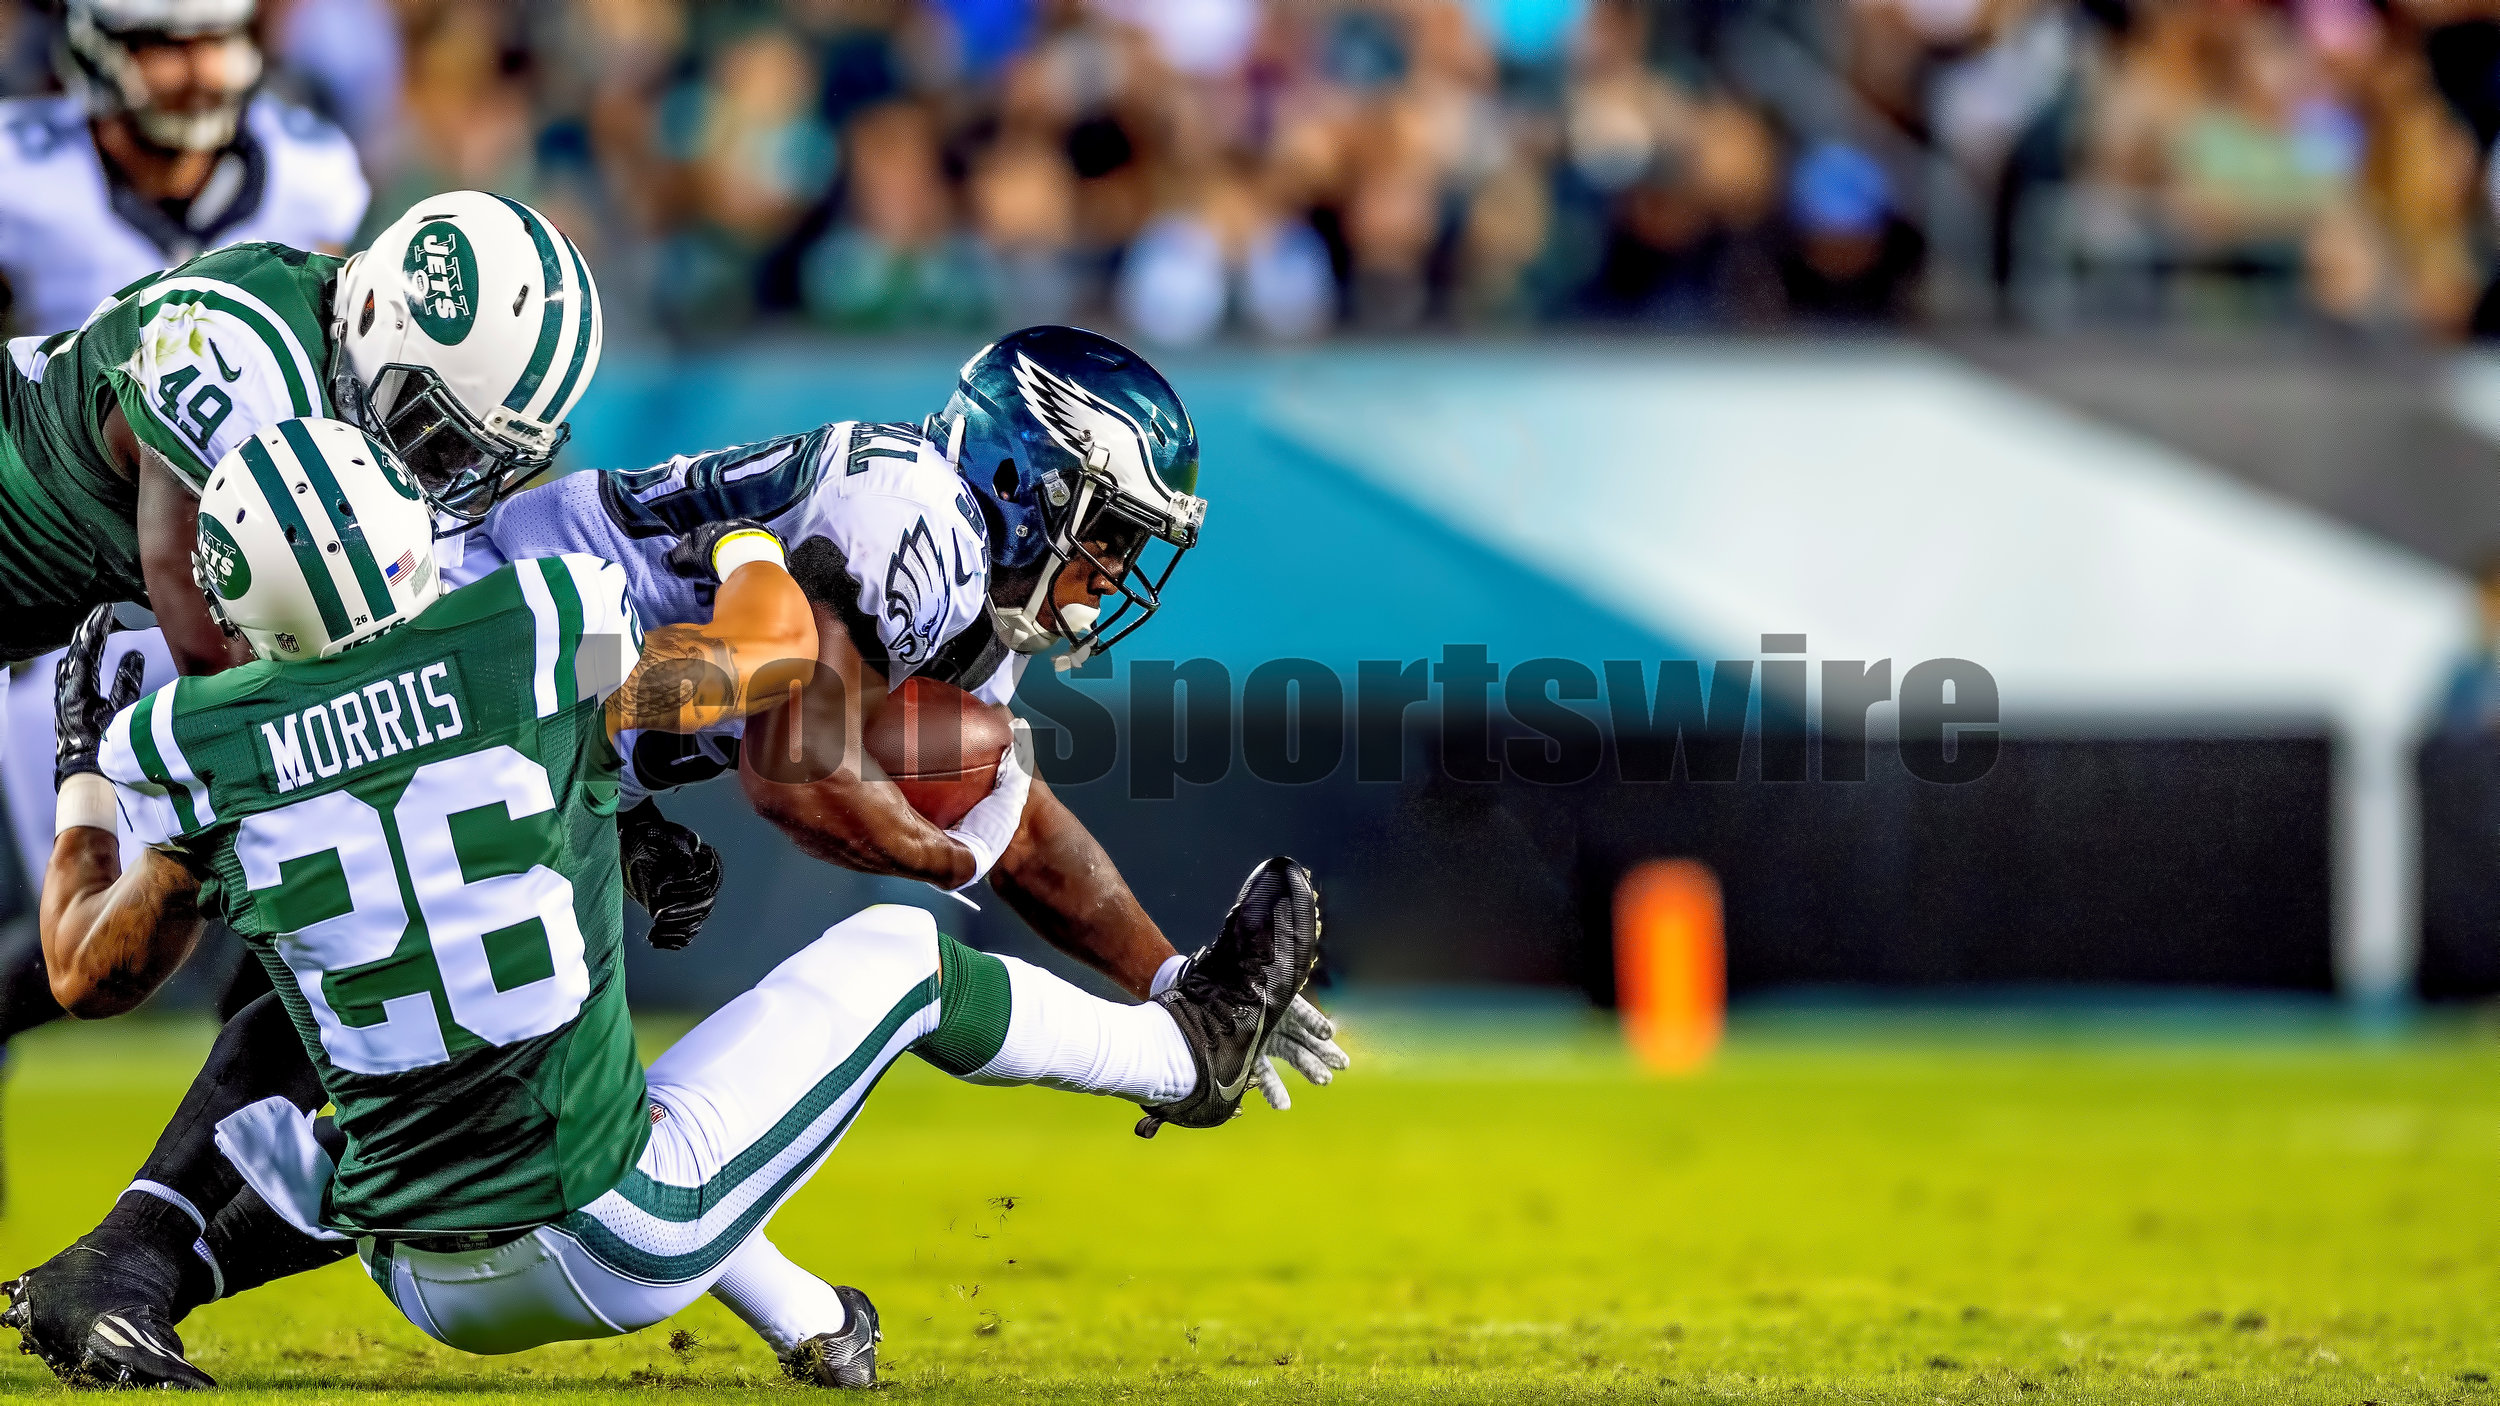 01 September 2016: Philadelphia Eagles wide receiver Byron Marshall (39) struggles for a few more yards during the Preseason National Football League game between the New York Jets and the Philadelphia Eagles played at Lincoln Financial Field in Philadelphia, PA. (Photo by Gavin Baker/Icon Sportswire)